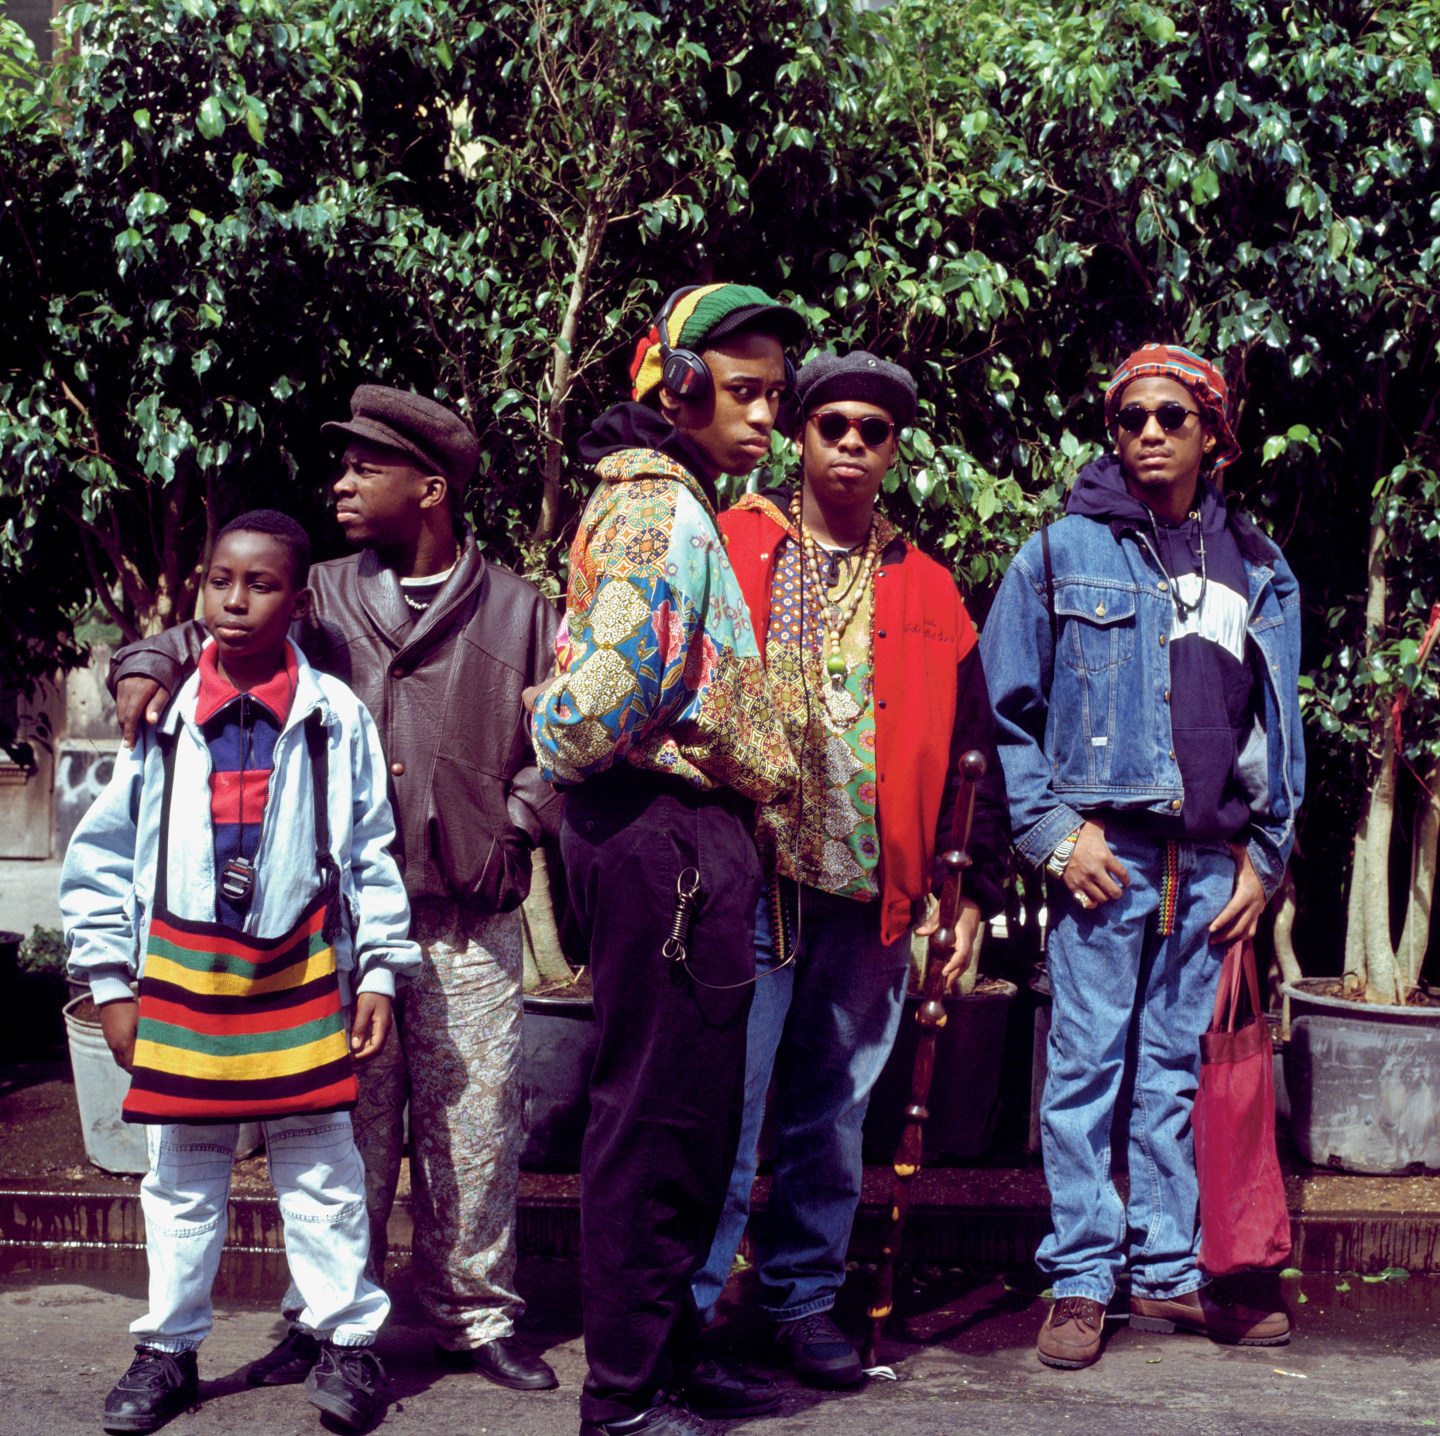 Enjoy these rare photos of Jay-Z, Notorious B.I.G., Puffy, and A Tribe Called Quest